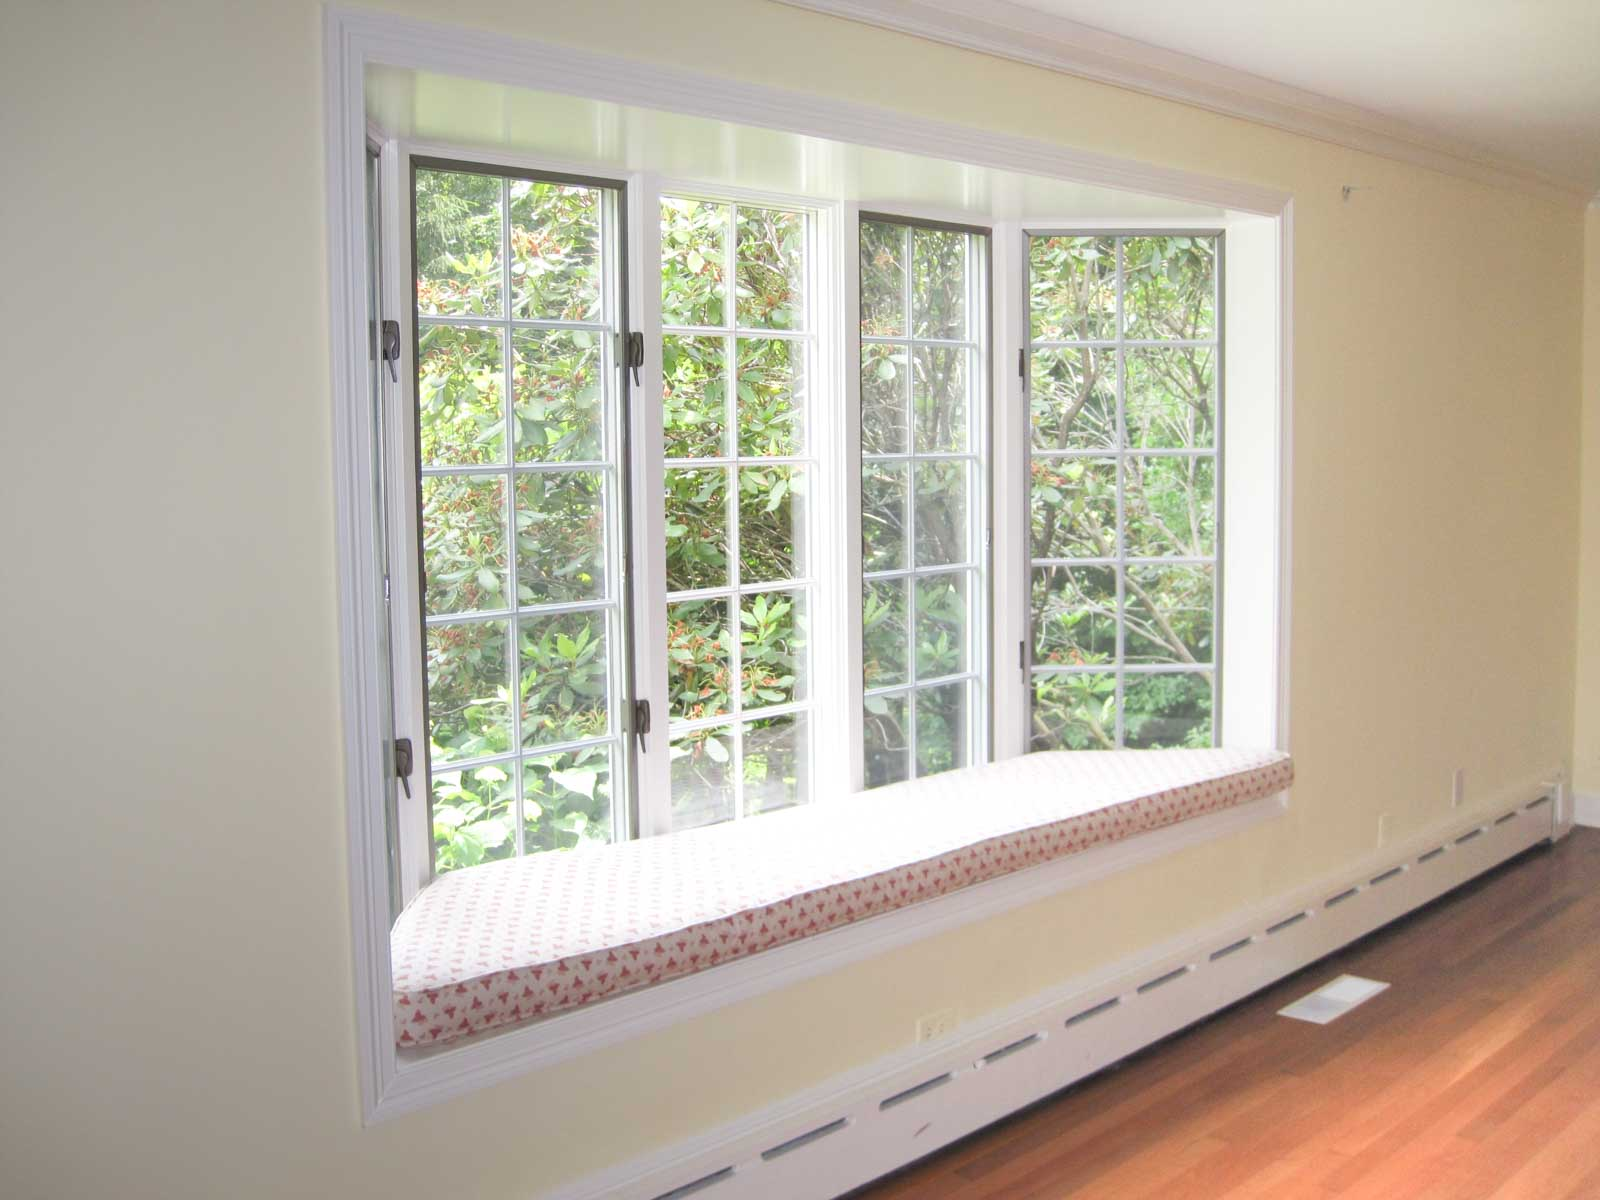 Our living room window seat before we remodeled!